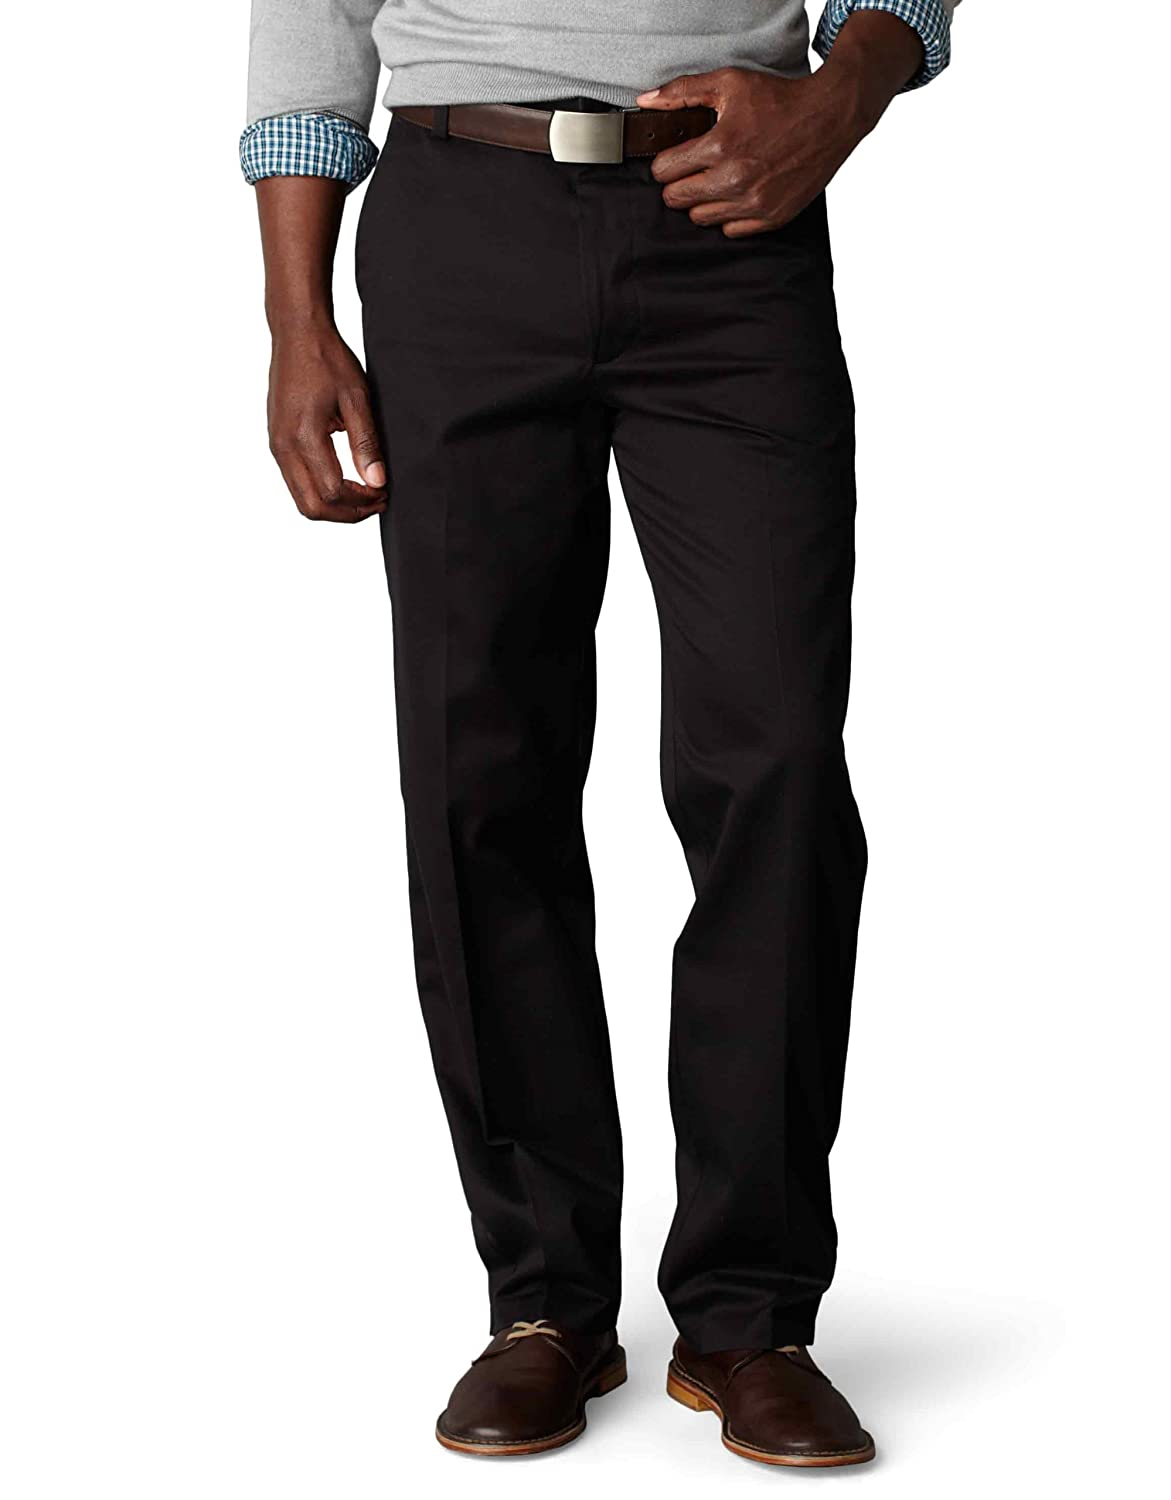 Casual men's pants & shorts - View our wide selection of casual pants,perfect for any occasion. For a movie date with friends, wear our chinos. For a walk or lounge around the house, wear our joggers. For a certain intensity of movement or running, wear our sweatpants.